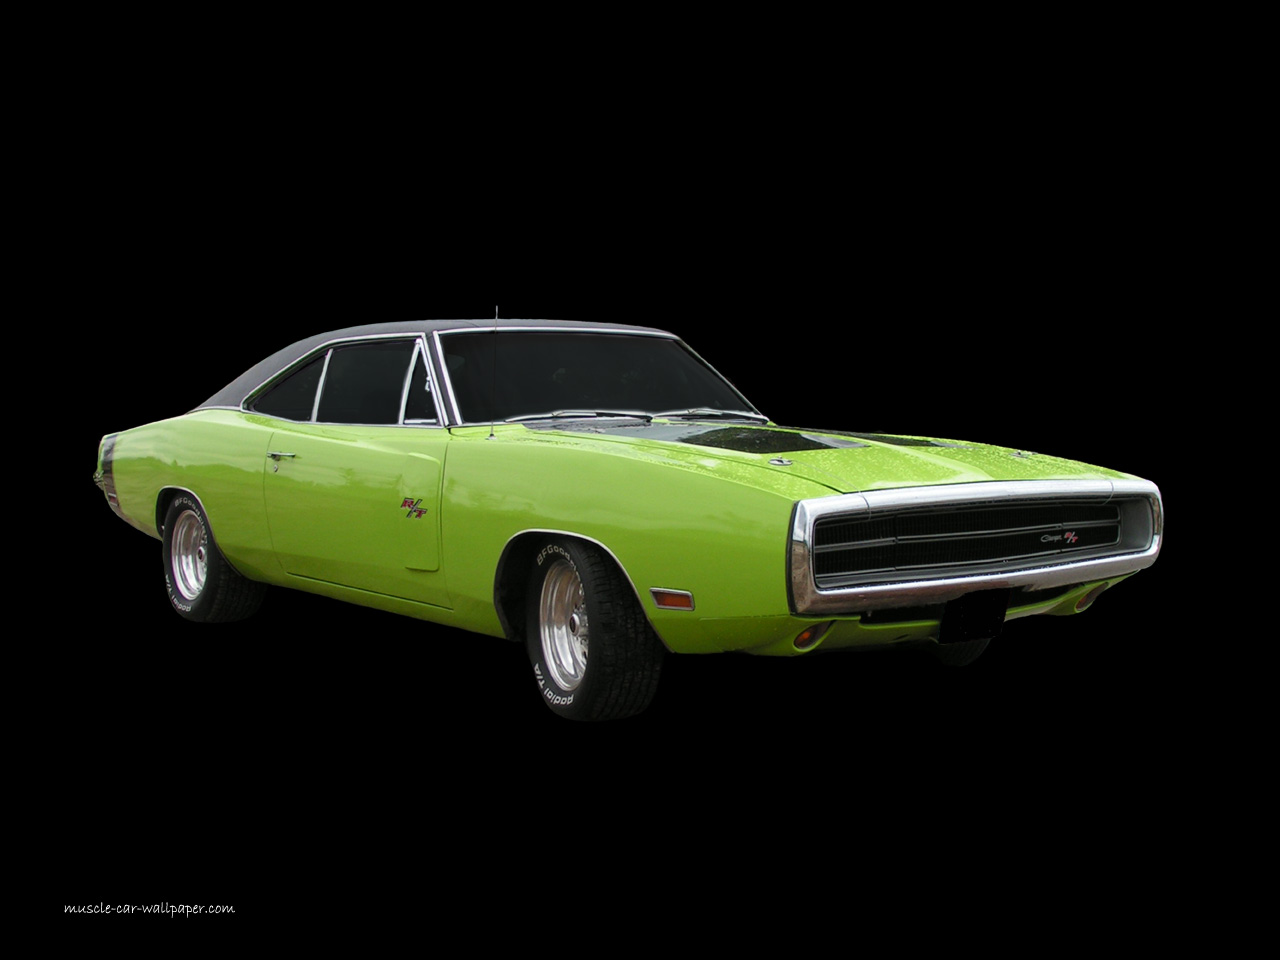 1969 Dodge Charger Rt Wallpaper Dodge Charger Gt Lime Green 623559 Hd Wallpaper Backgrounds Download